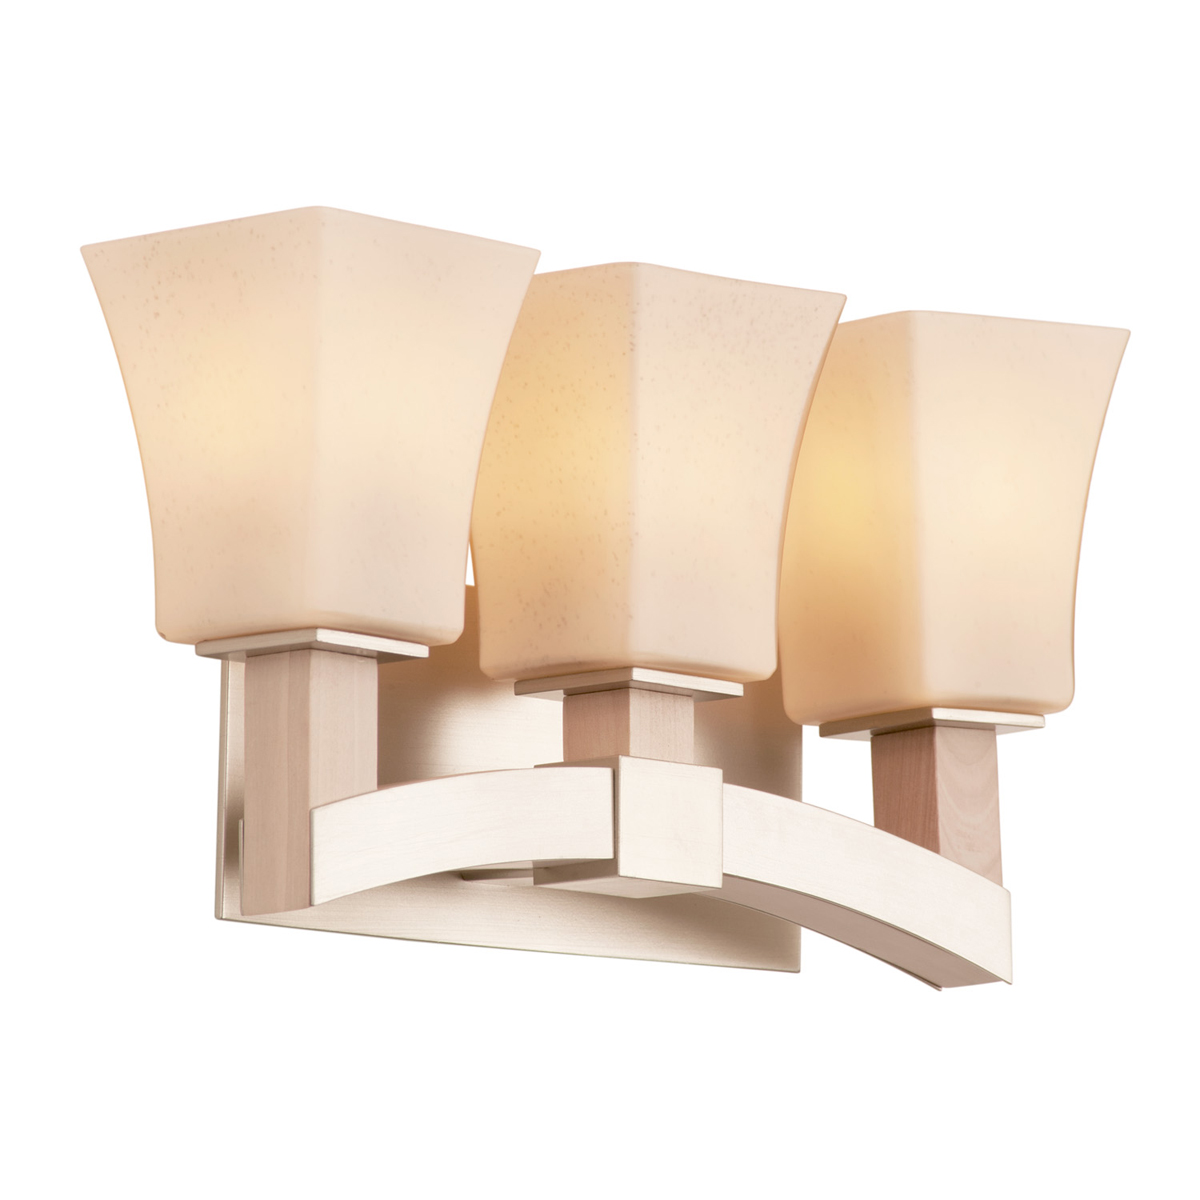 Cool Use These Bulbs In Your Overhead Light Fixture You Can Also Get Fullspectrum